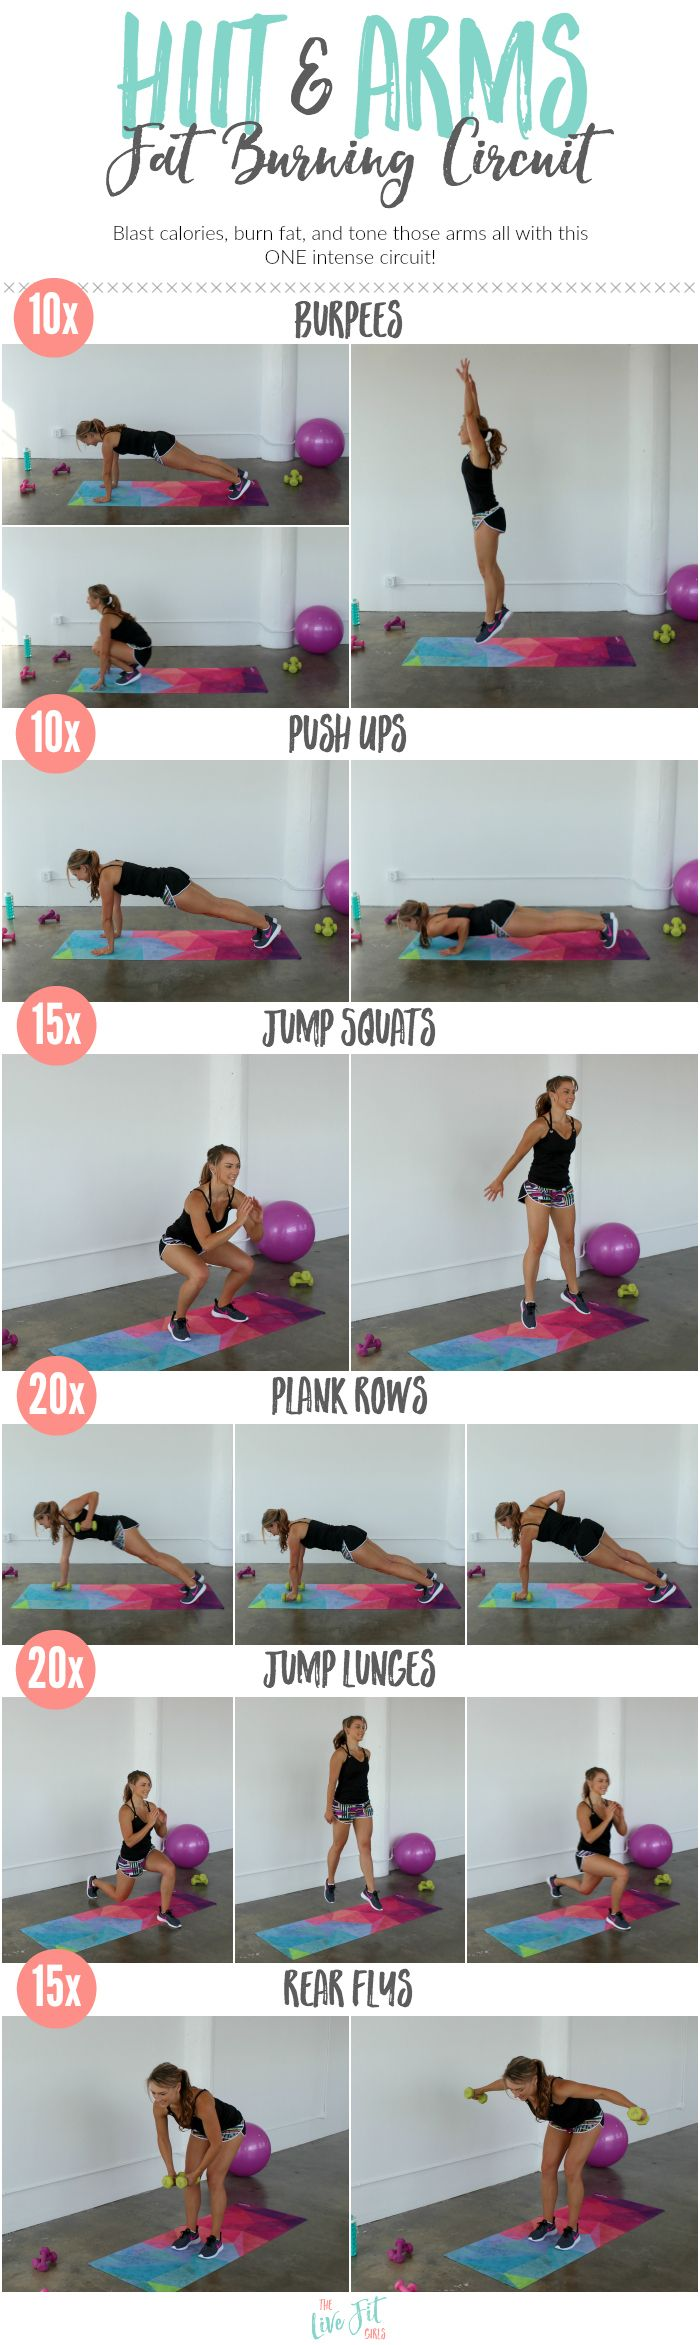 Fat burning HIIT moves combined with toning arm exercise will give you one amazing, fat blasting workout!